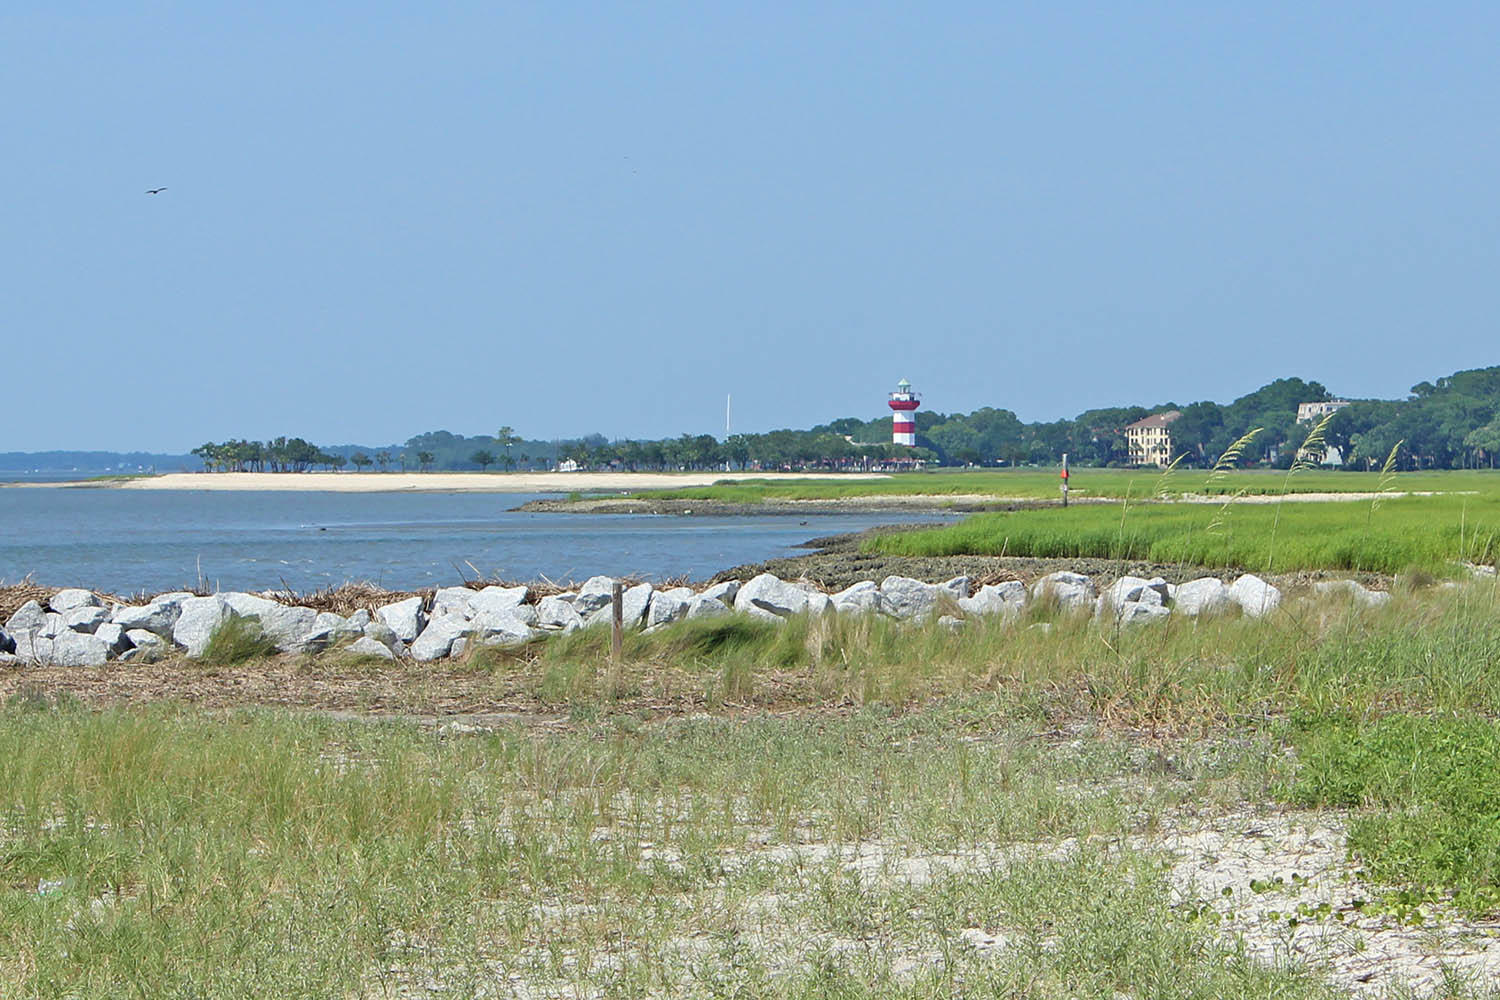 View of Harbour Town Lighthouse from beach